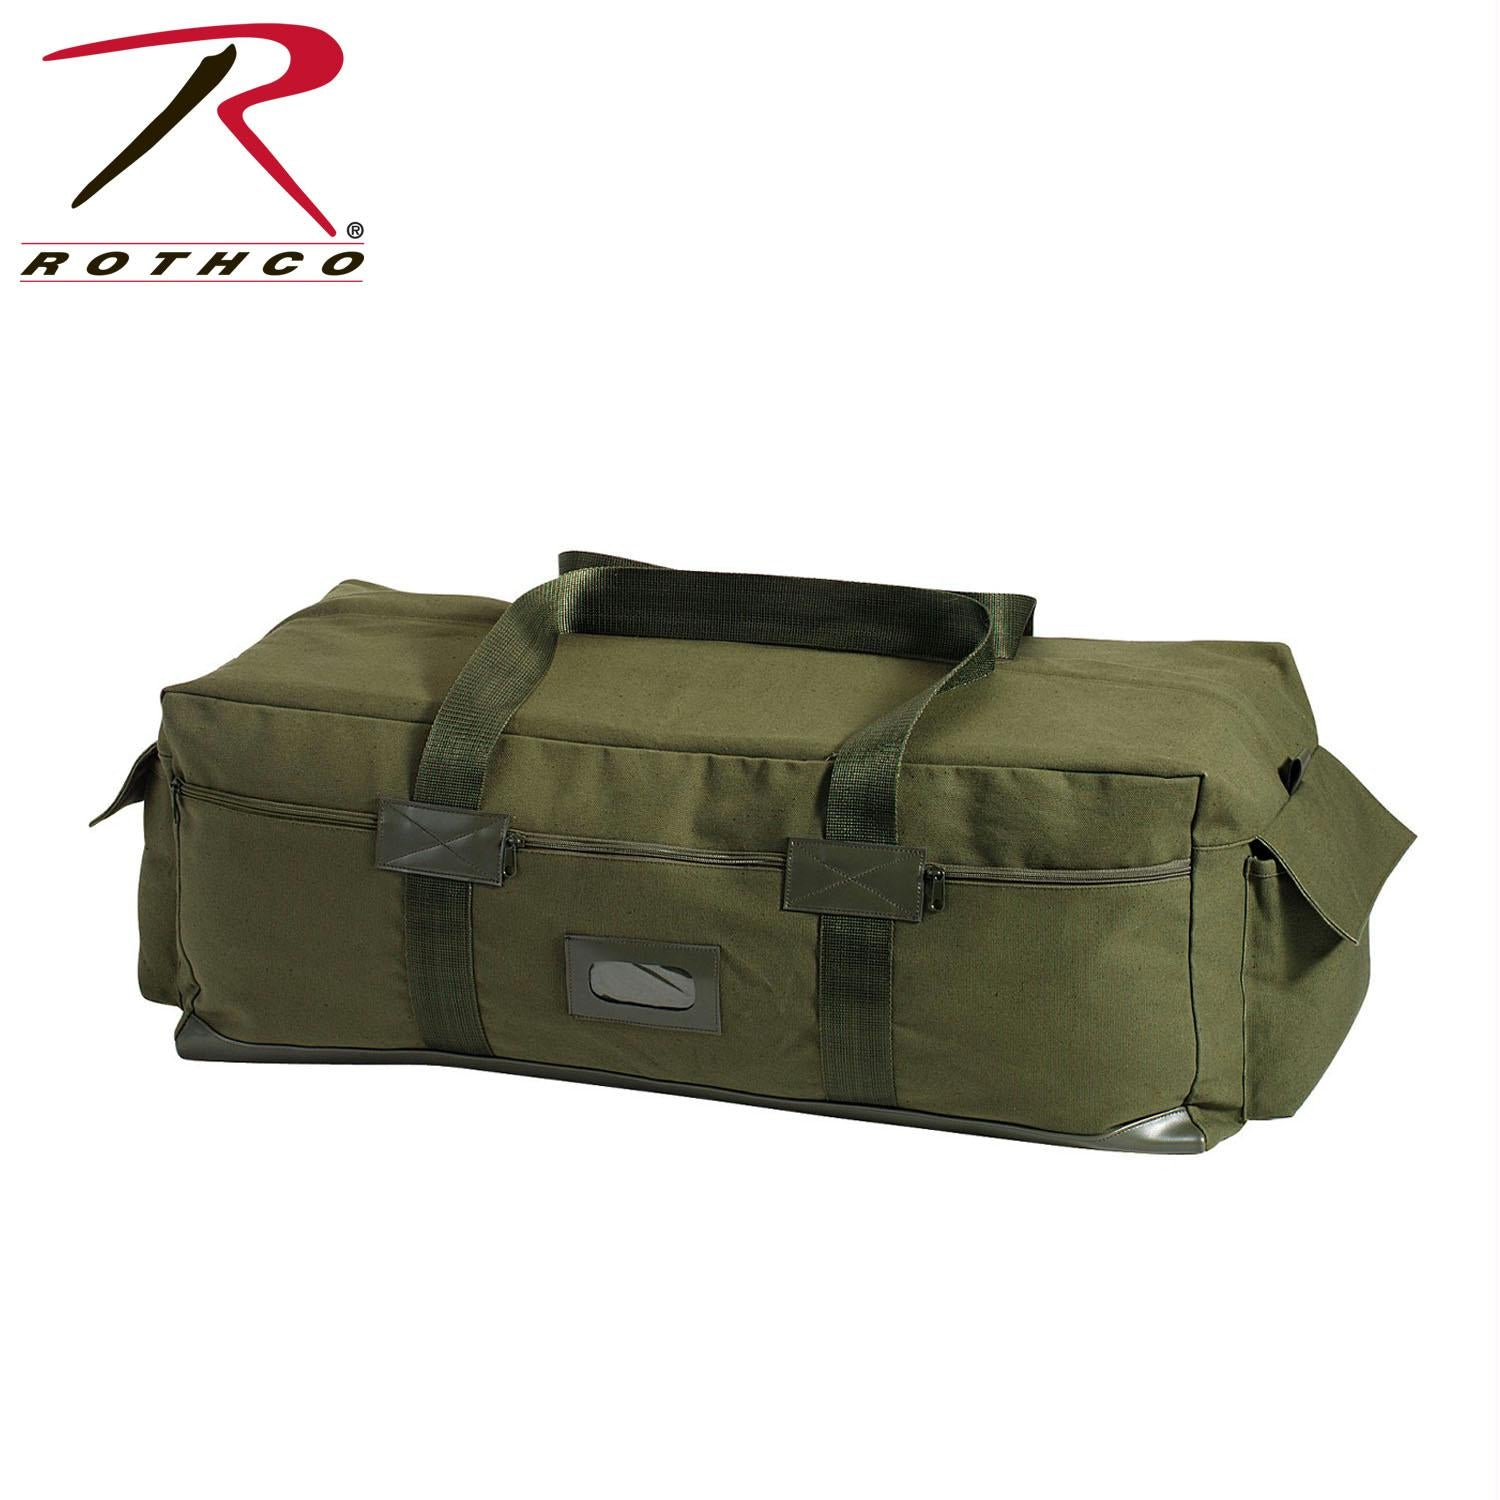 Rothco Canvas Israeli Type Duffle Bag - Olive Drab